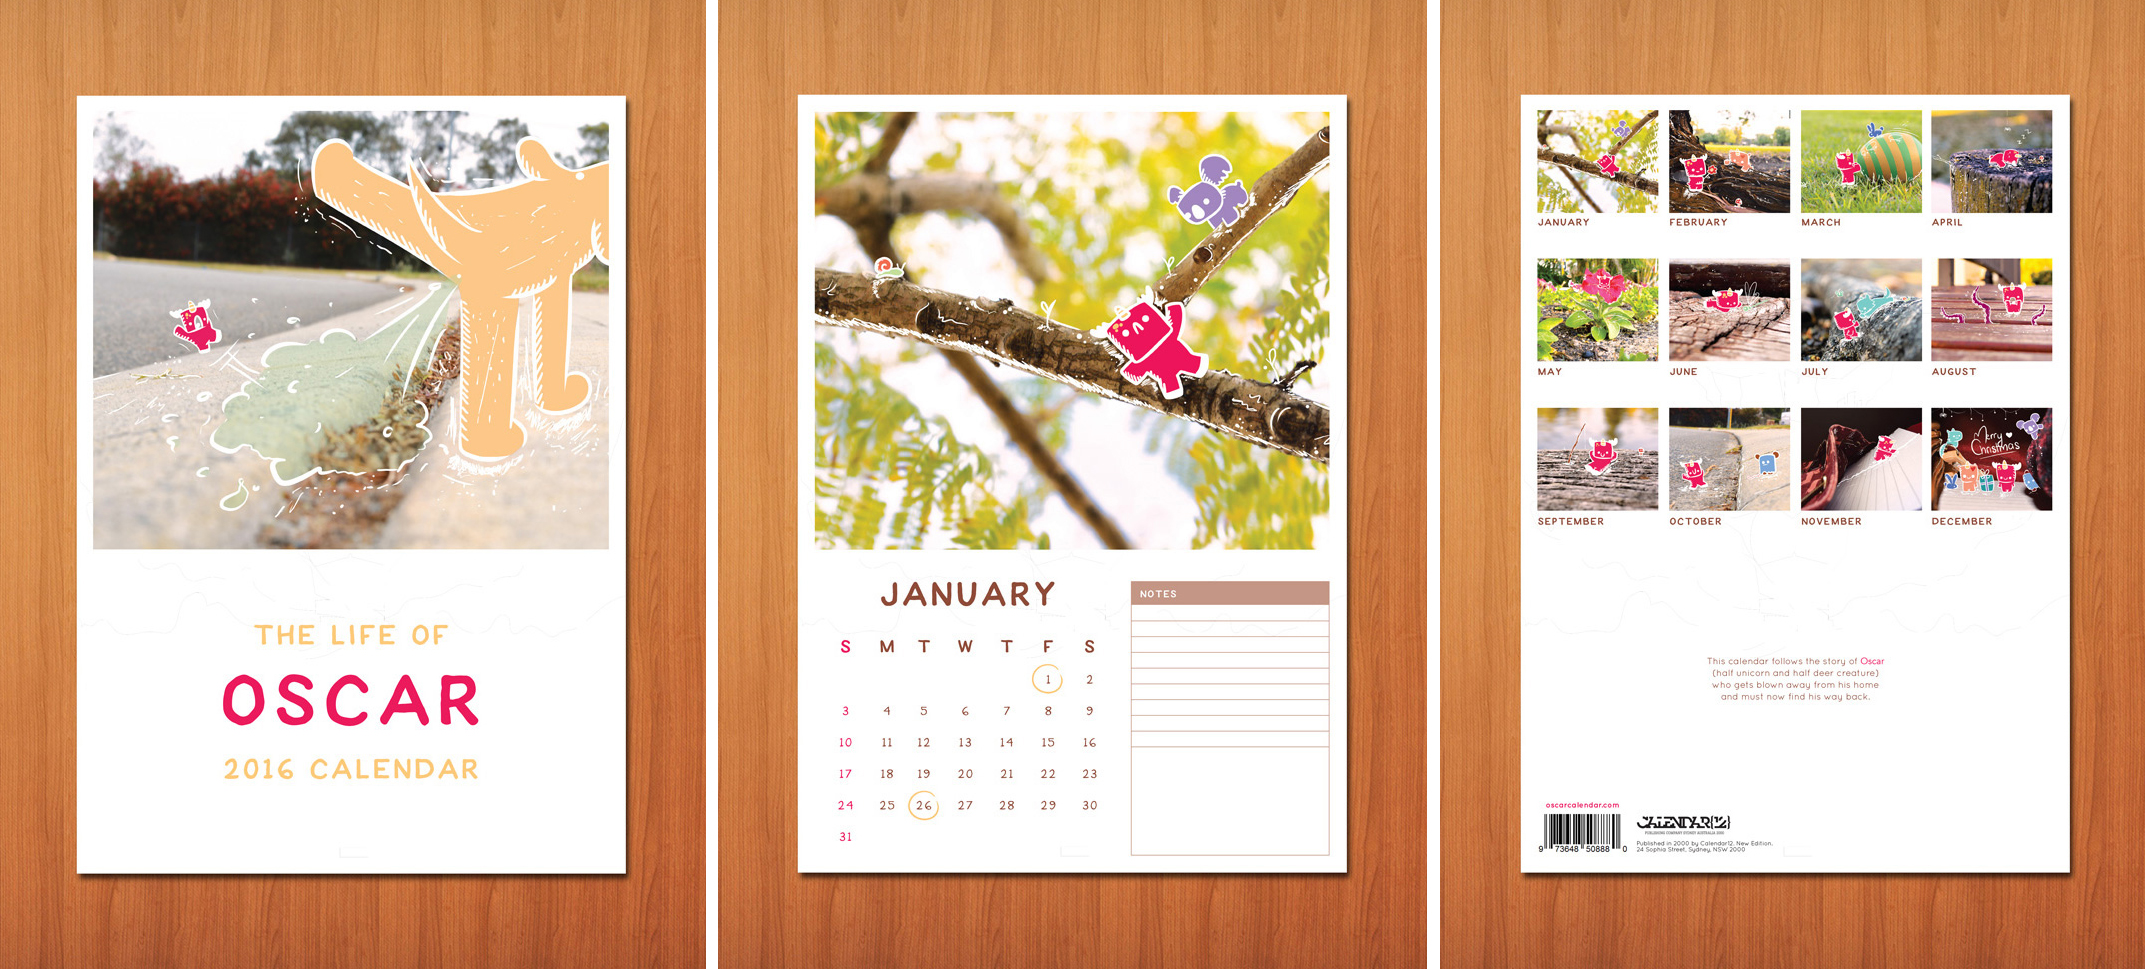 2016 Calendar showing a micro-world. Follows the story of a small creature using art. (2016)